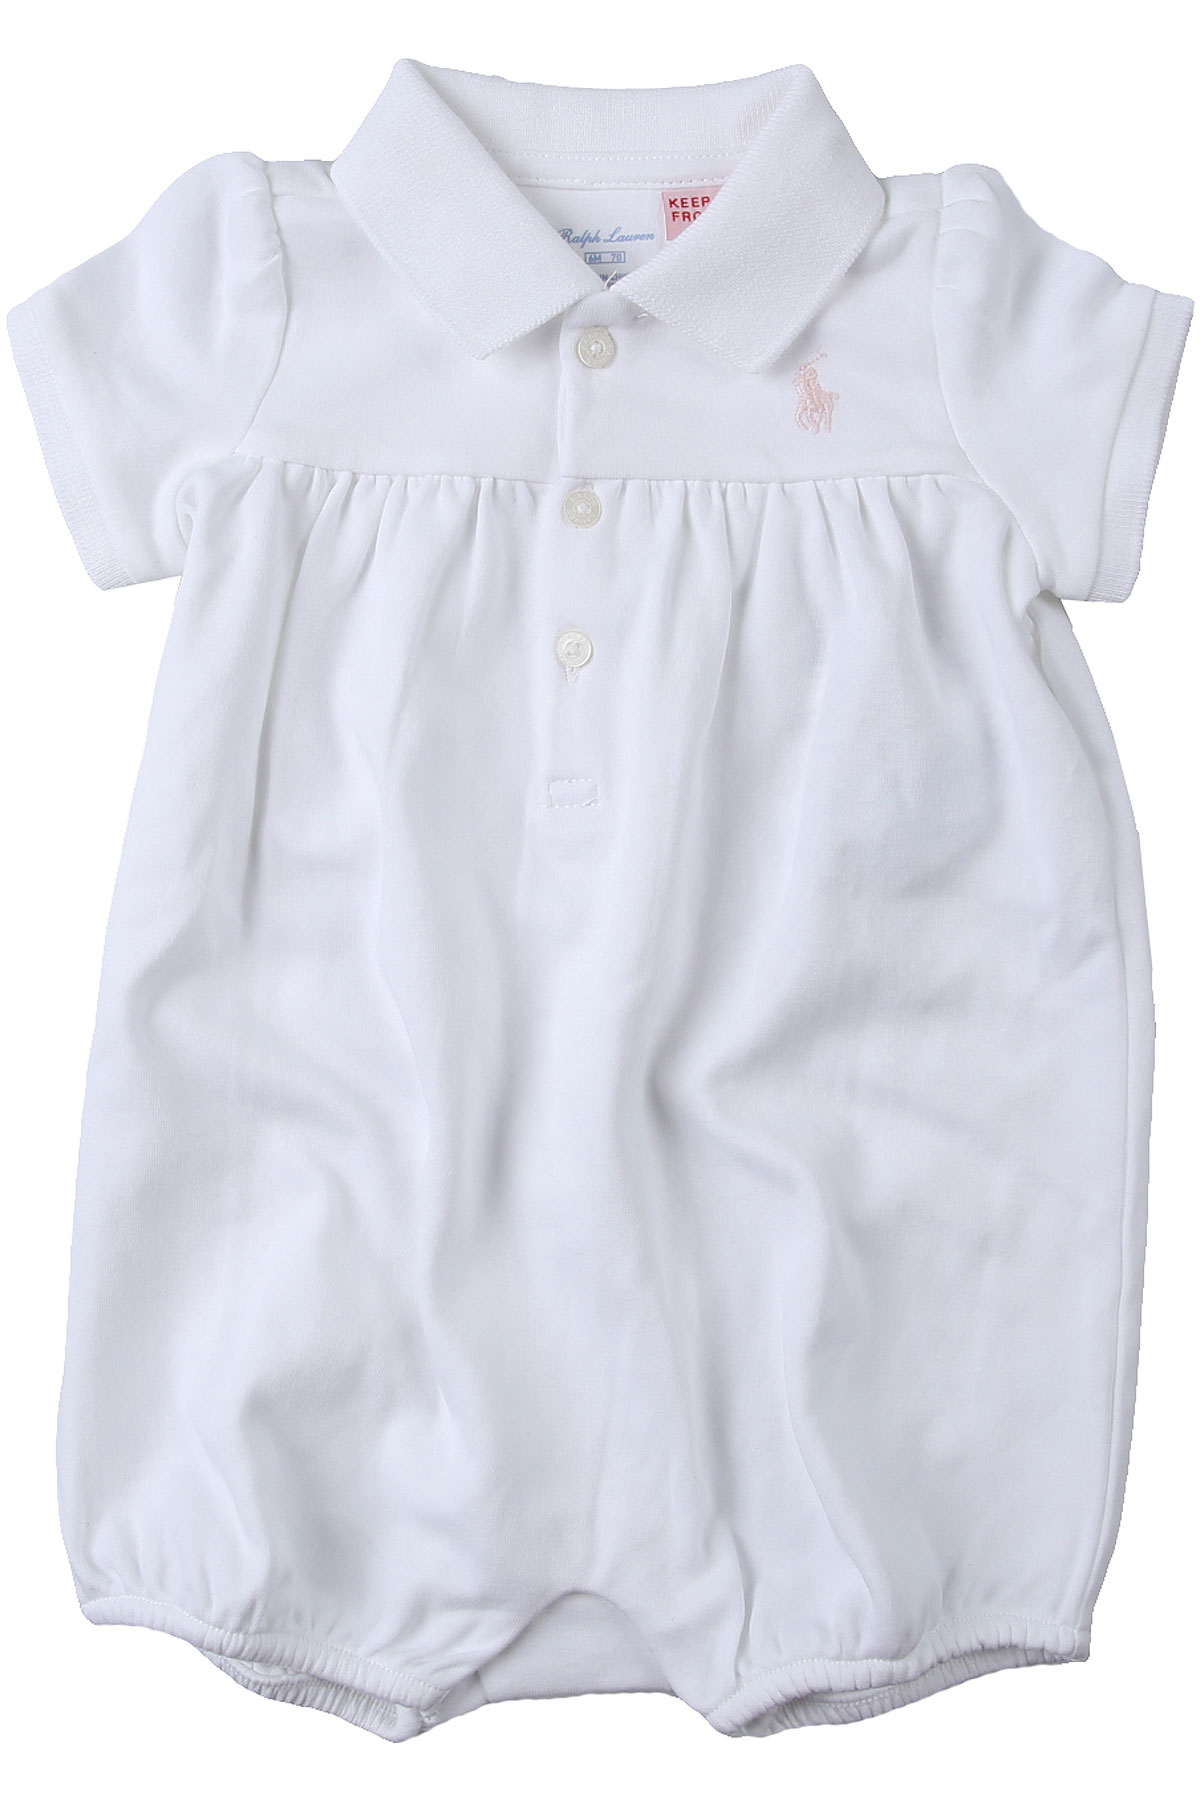 Ralph Lauren Baby Bodysuits & Onesies for Girls On Sale in Outlet, White, Cotton, 2019, 3M 6M